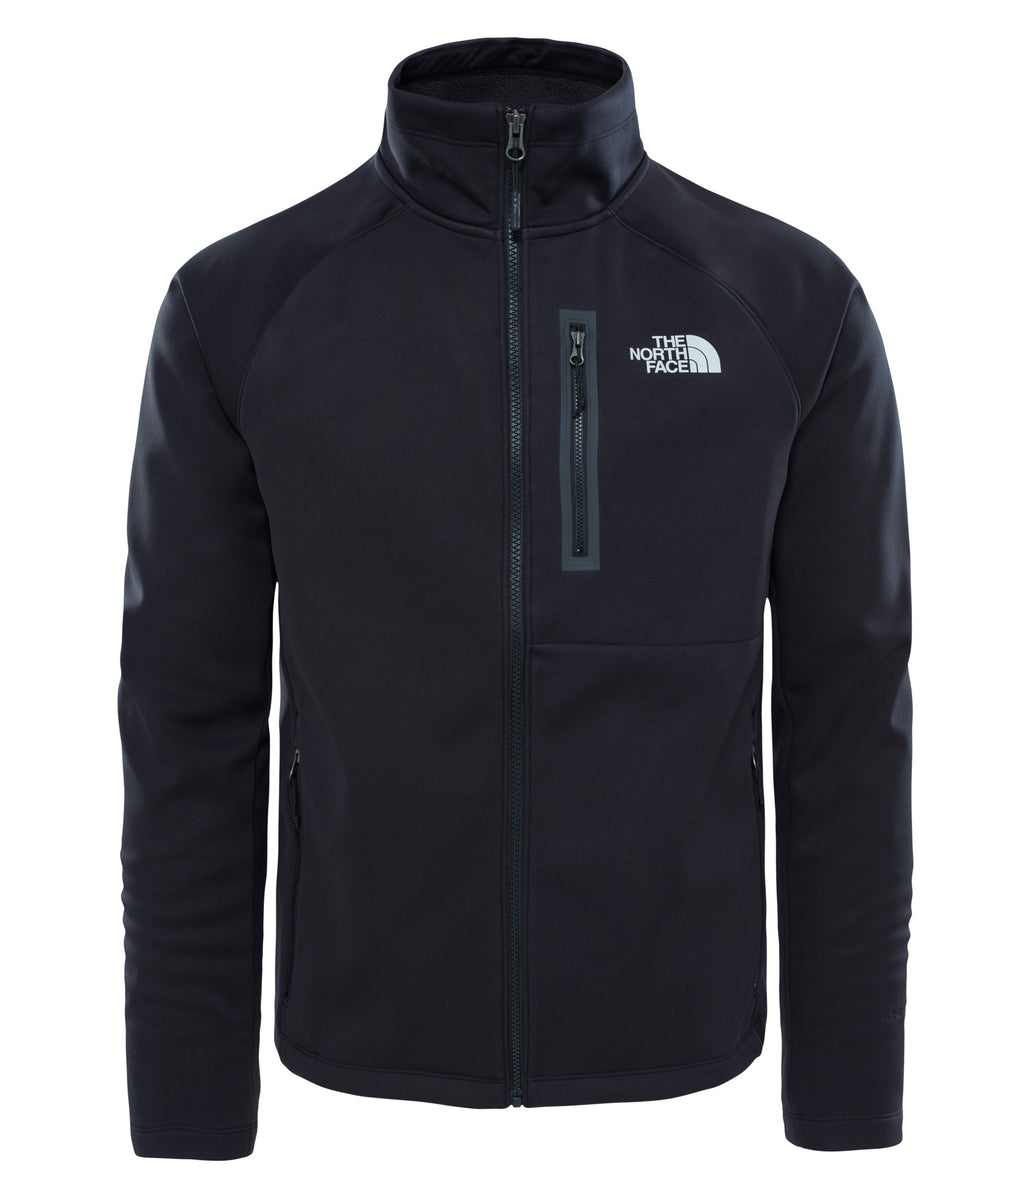 The North Face Men's Canyonlands promotional Soft Shell Jacket